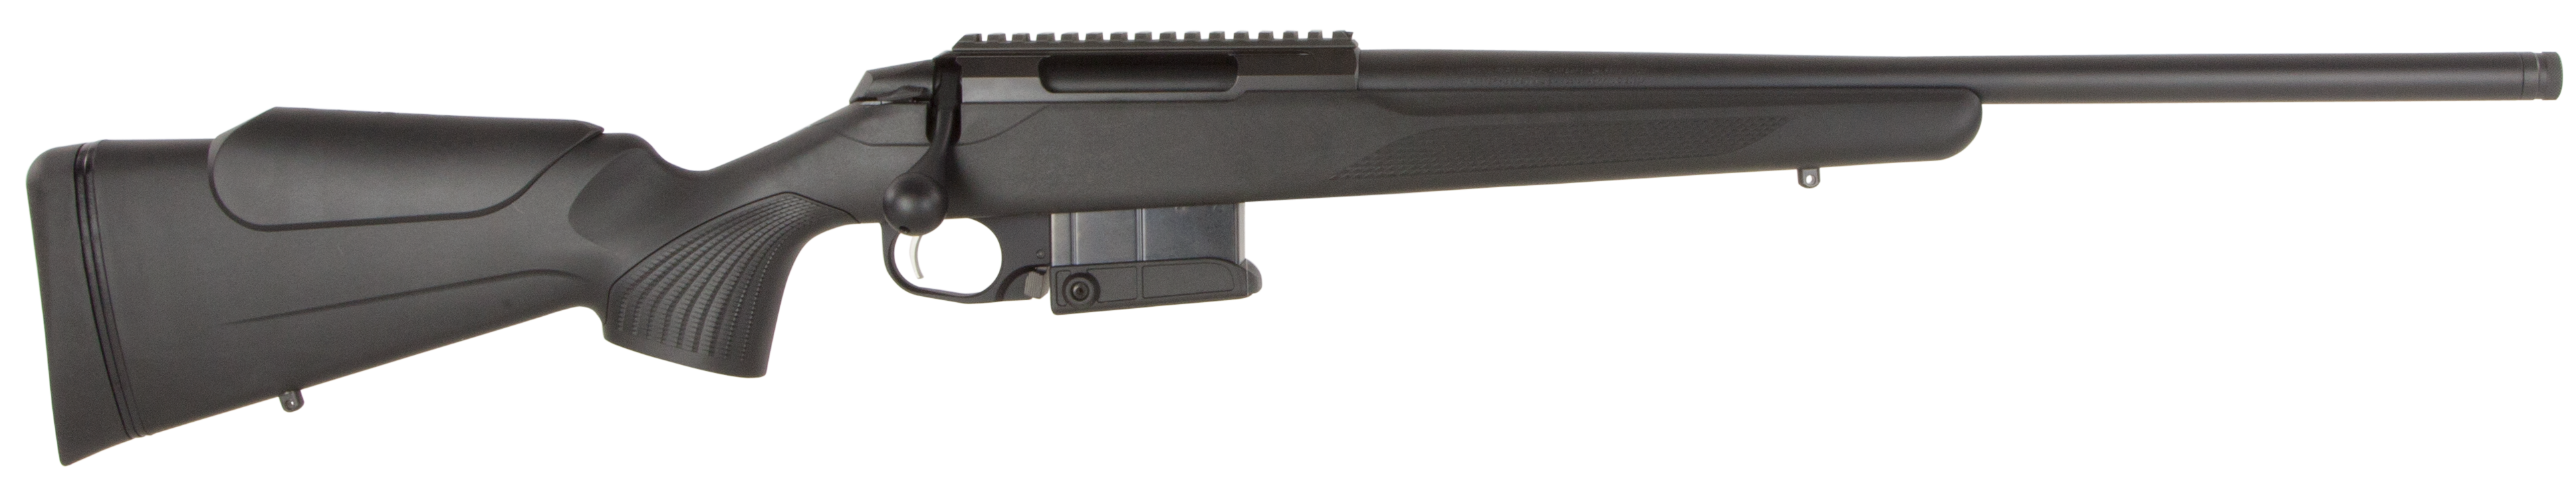 Tikka T3x Compact Tactical Rifle (CTR) 260 Rem 20